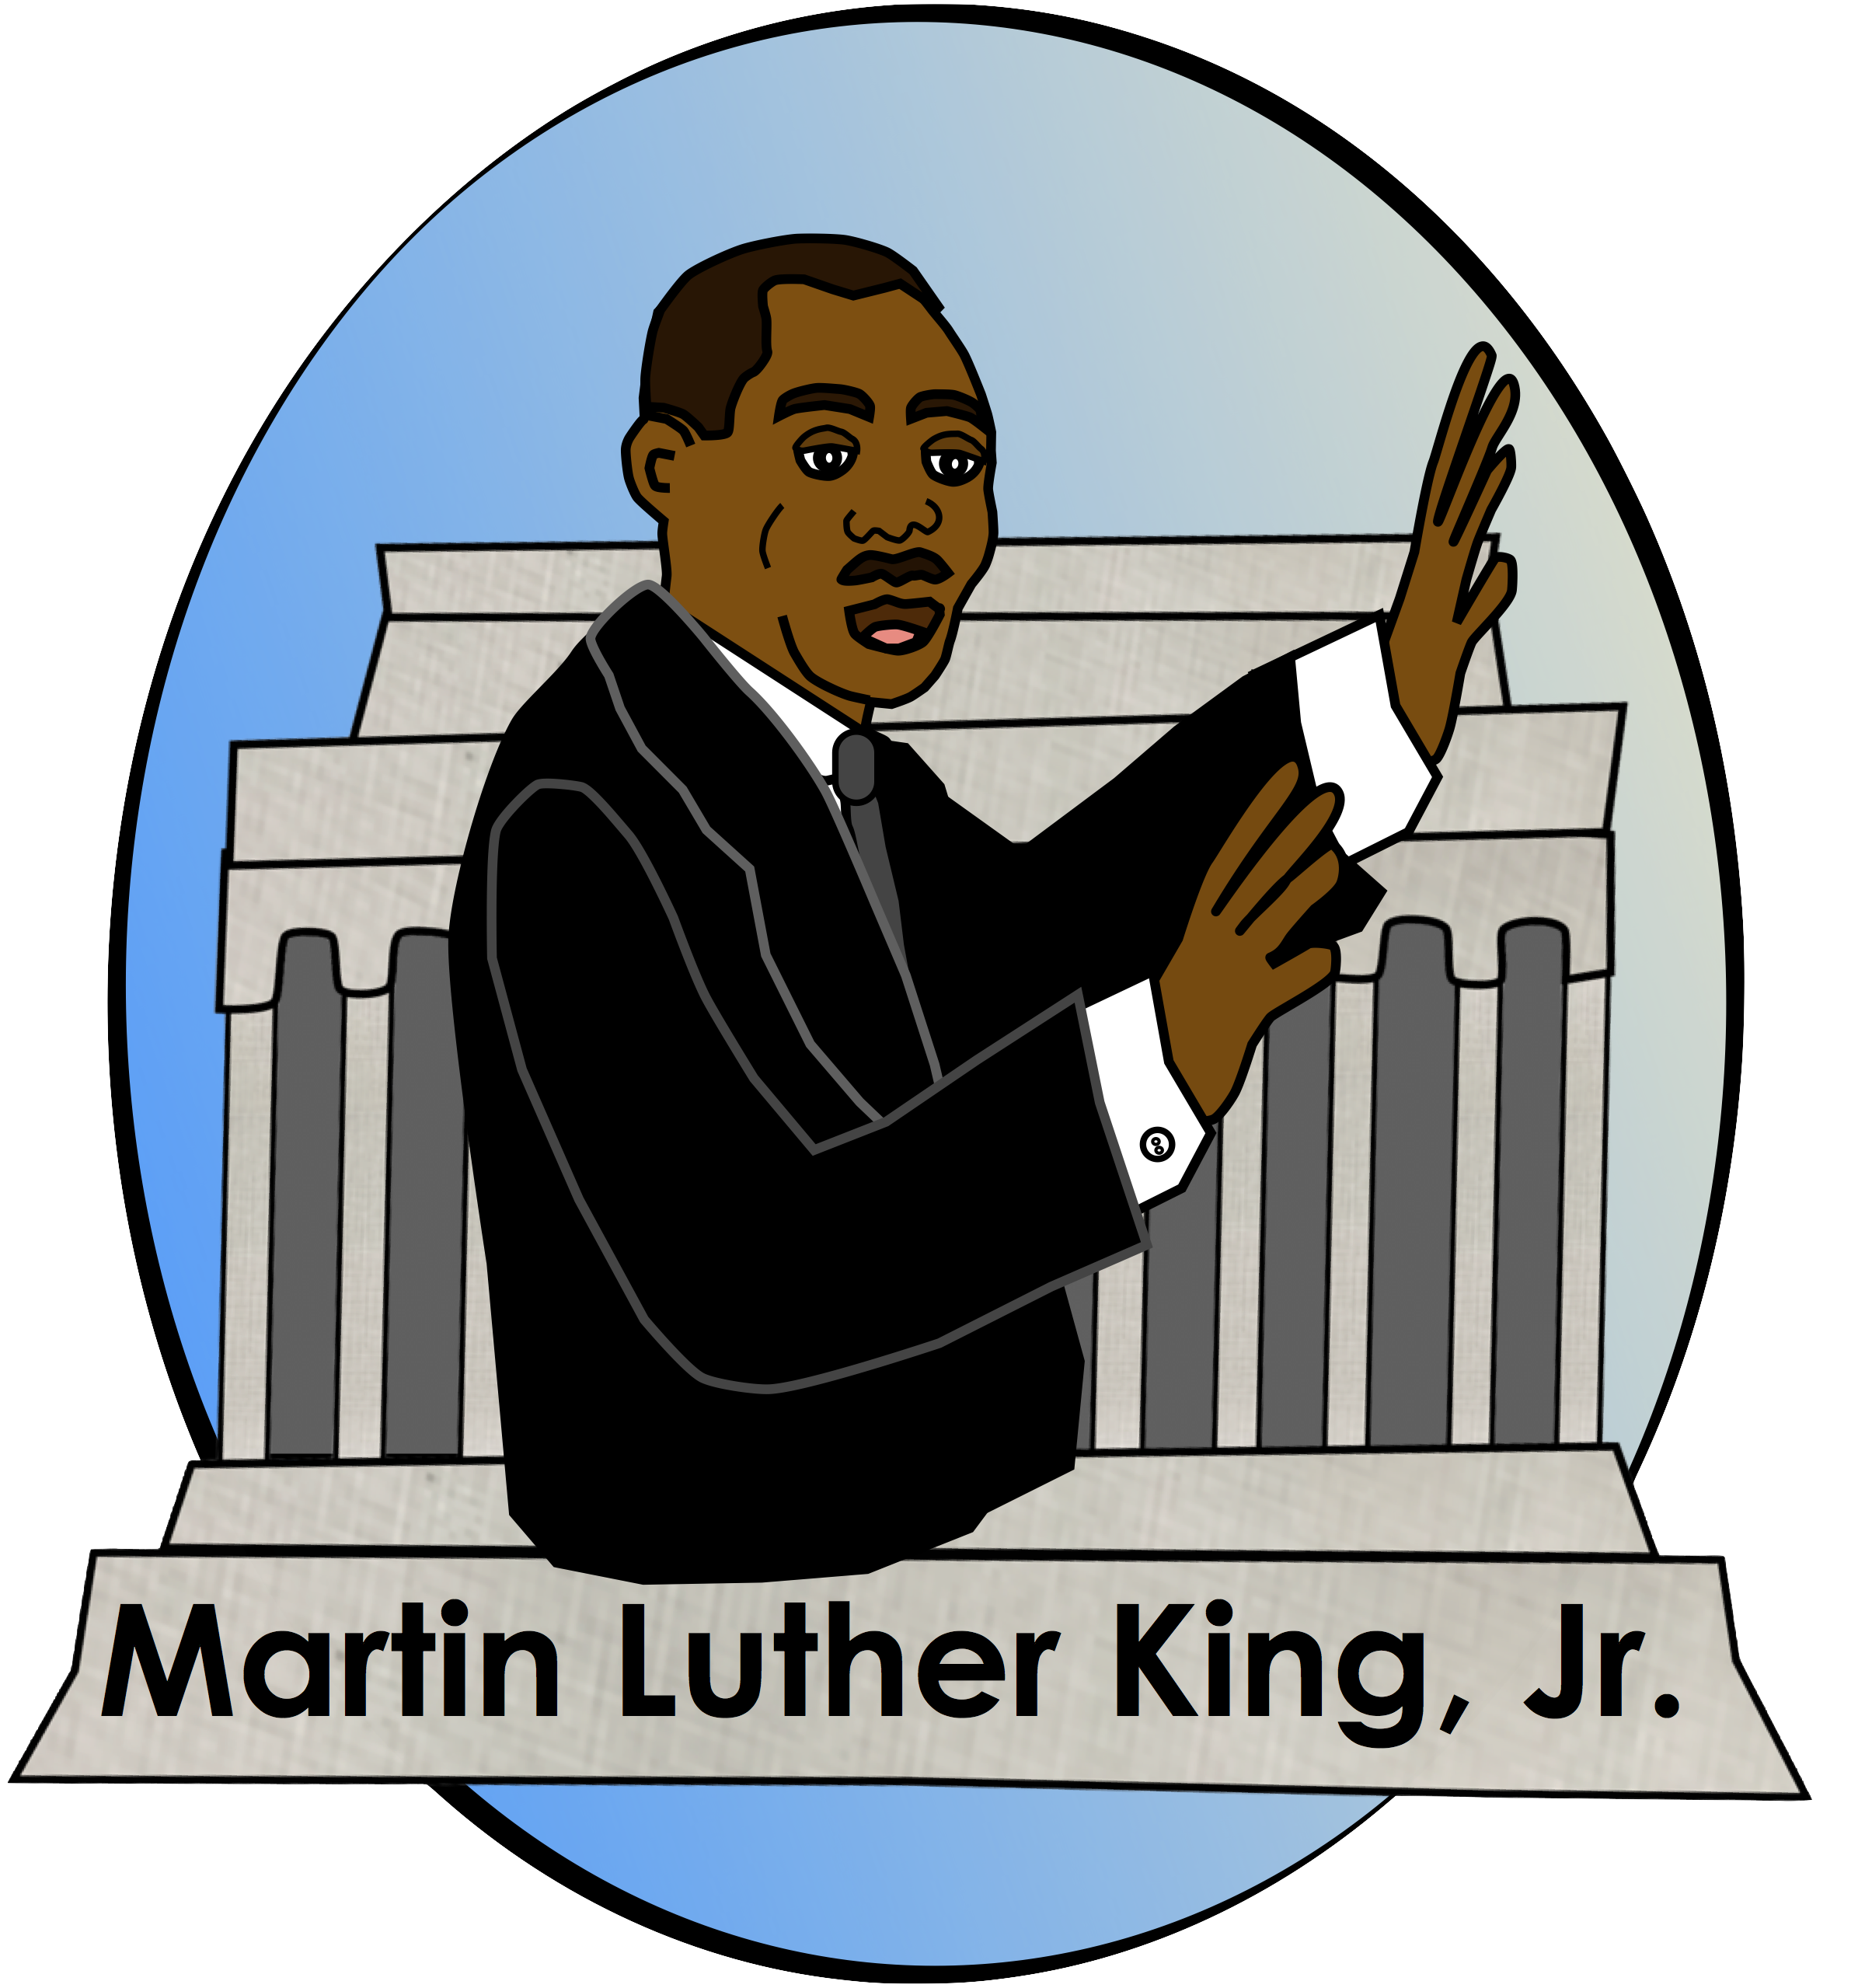 Jr clipart transparent library Martin luther jr clipart - 135 transparent clip arts, images and ... transparent library